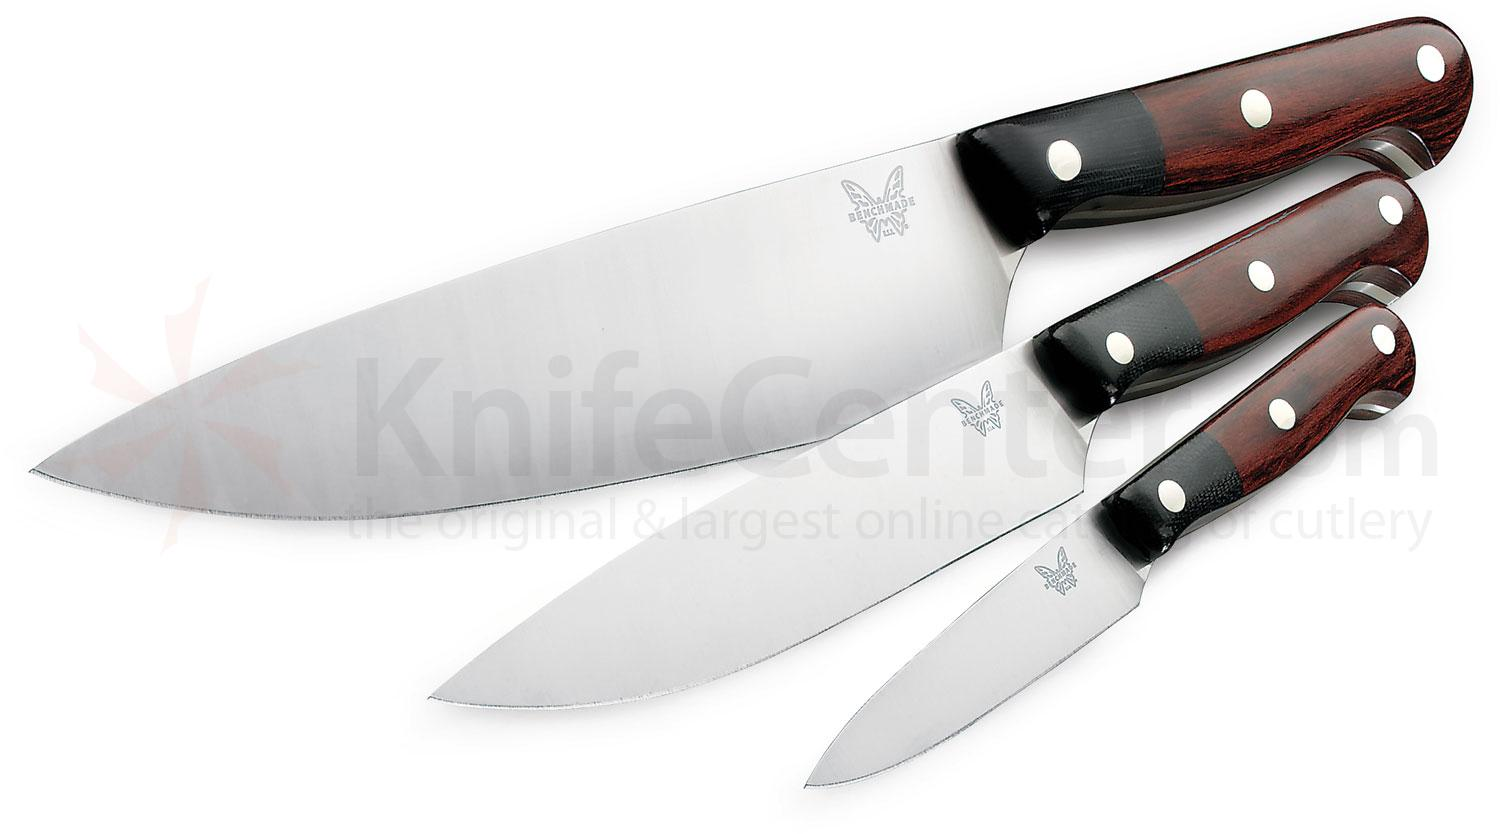 Benchmade Prestigedges Kitchen Knife Set